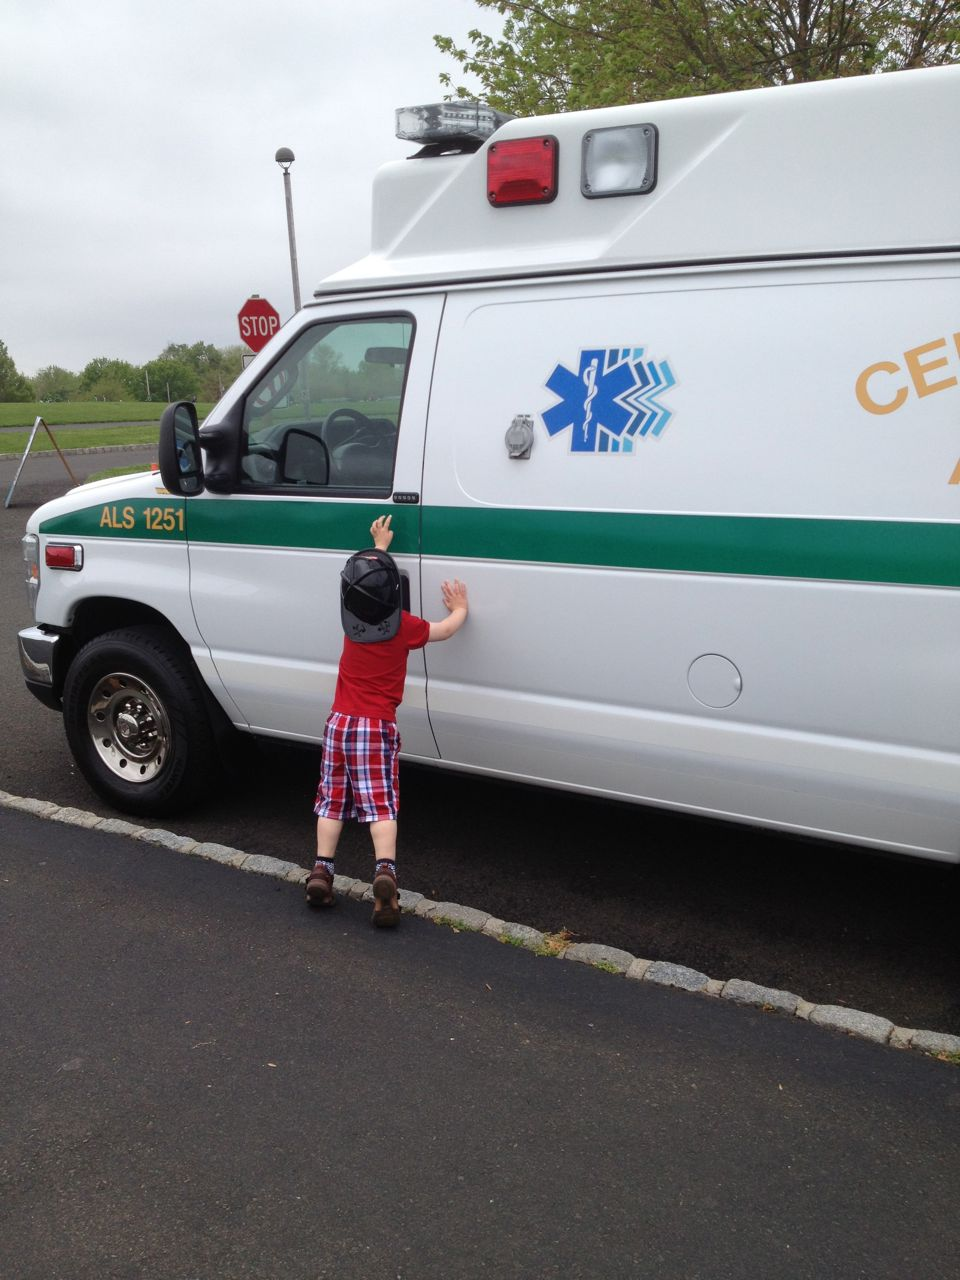 Adam tries the ambulance door